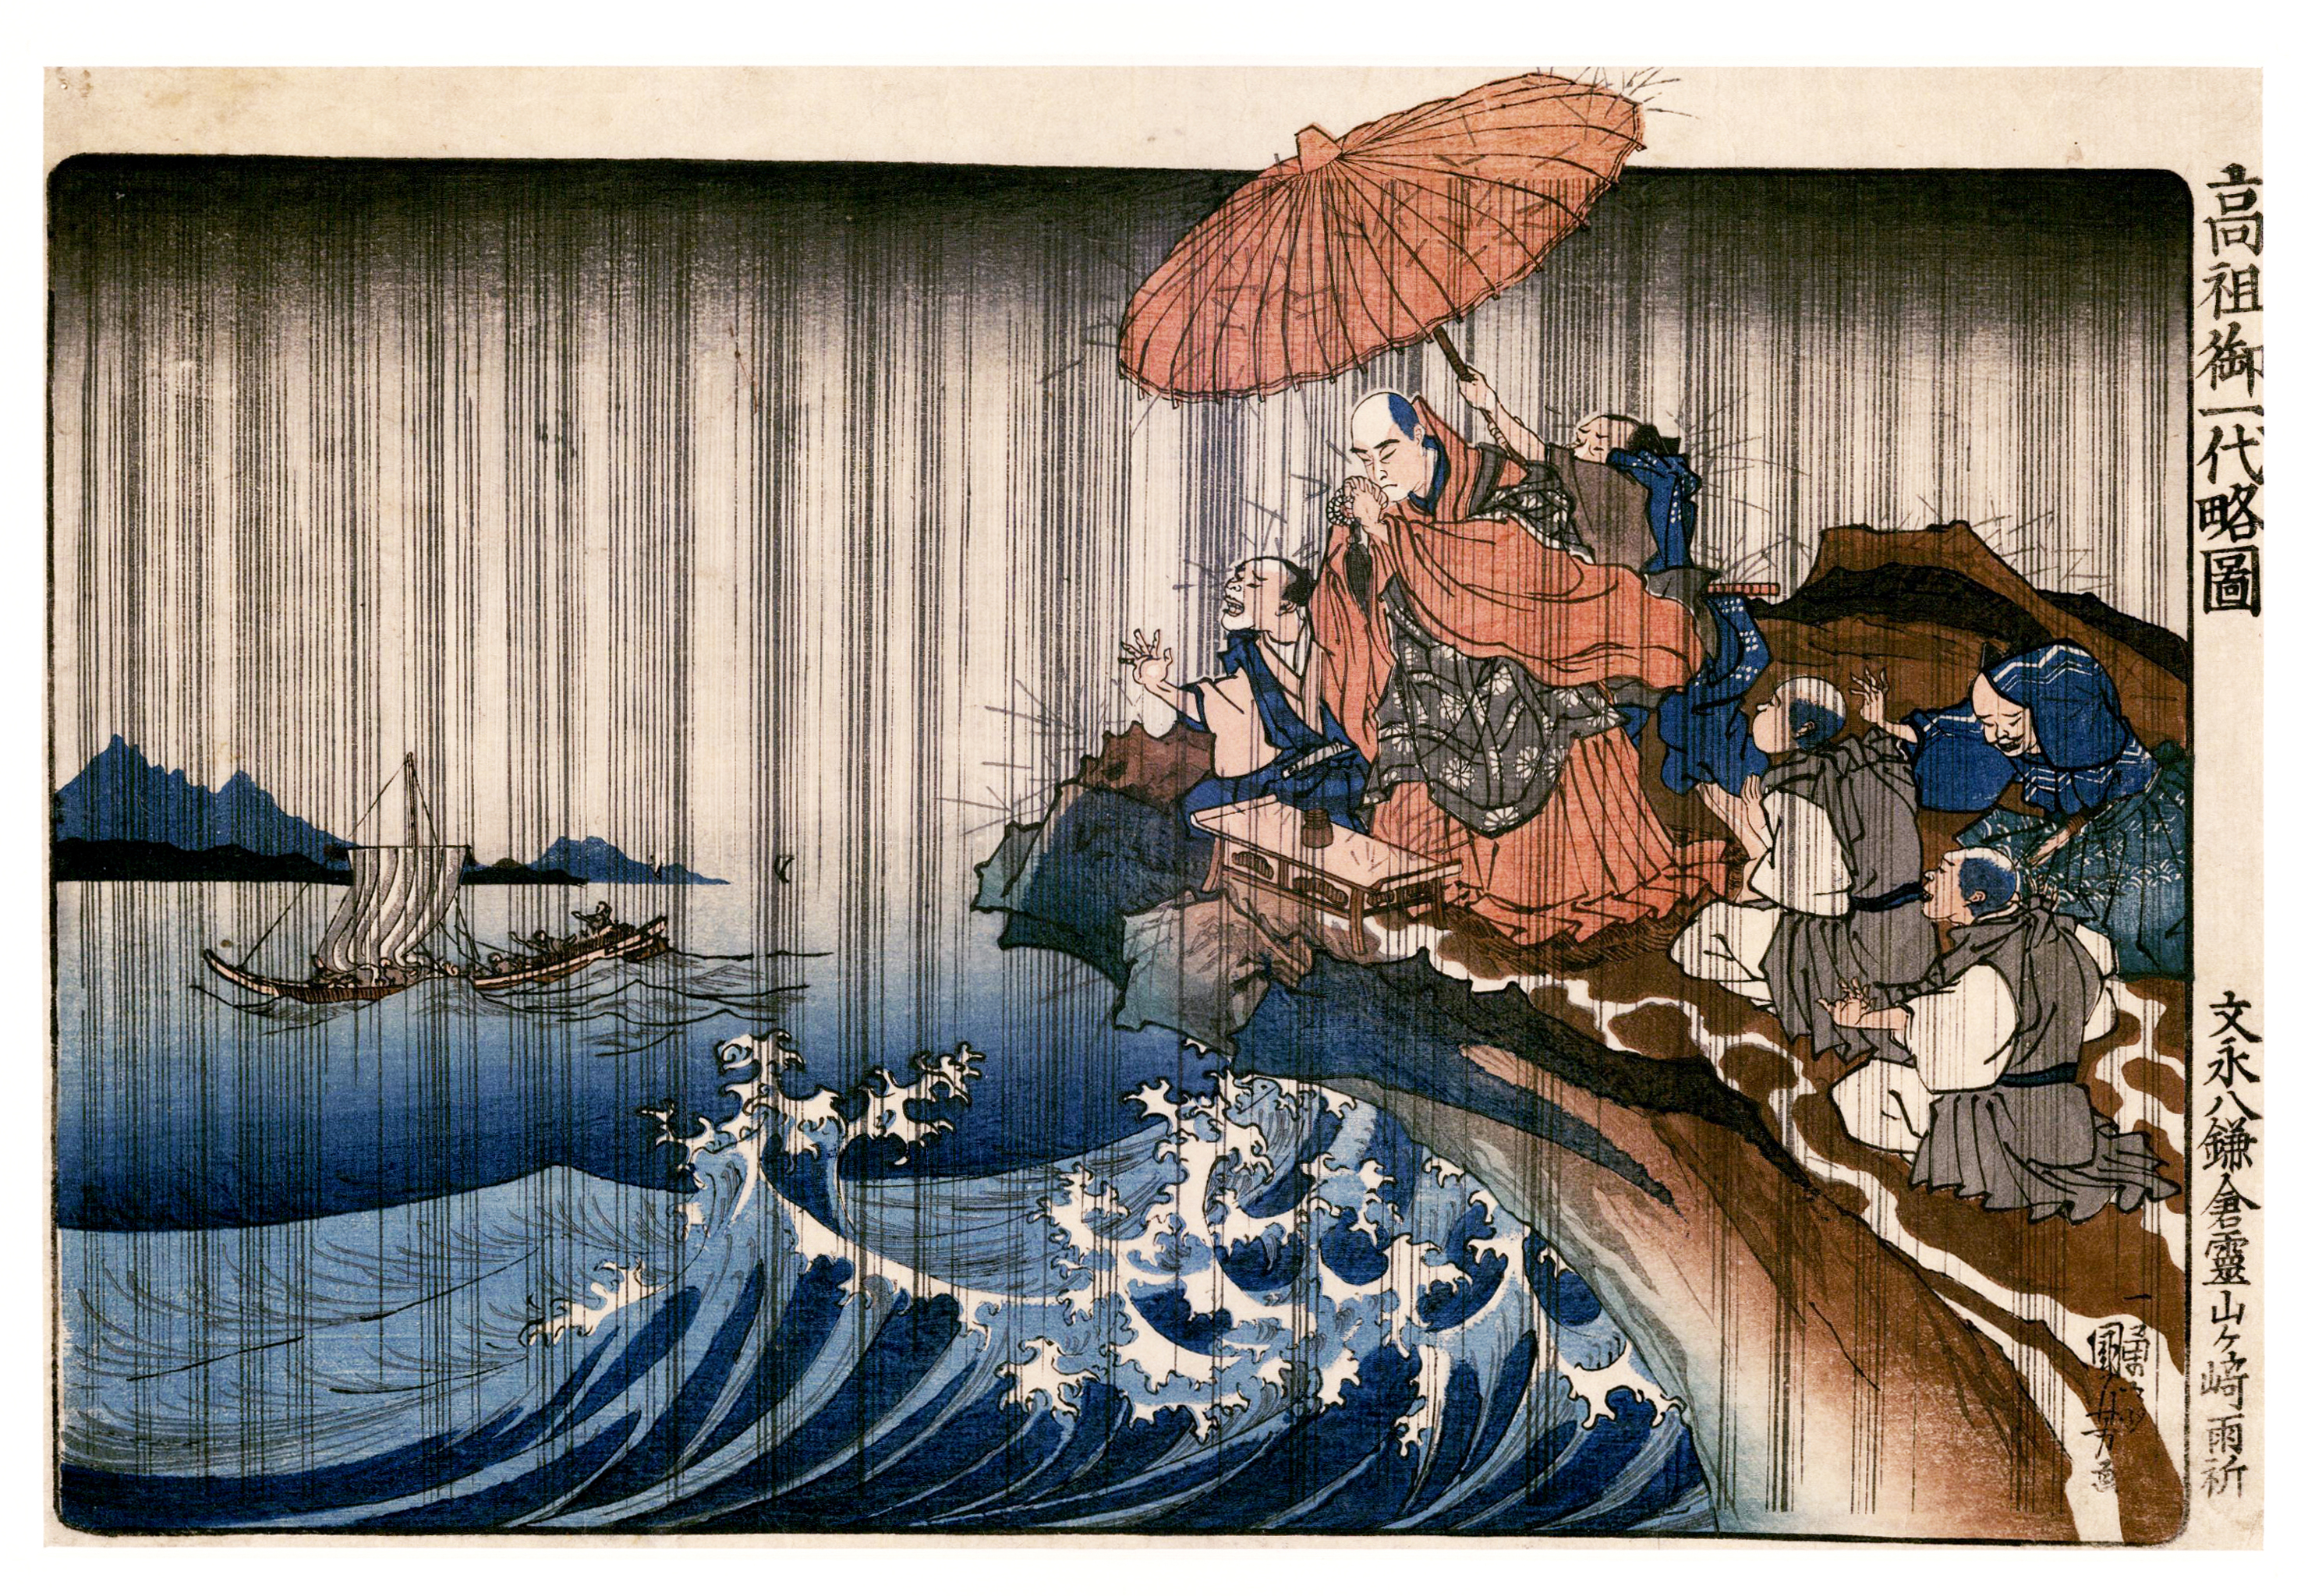 Ukiyo-e: Japanese Woodblock Prints | John J. Burns Library ...